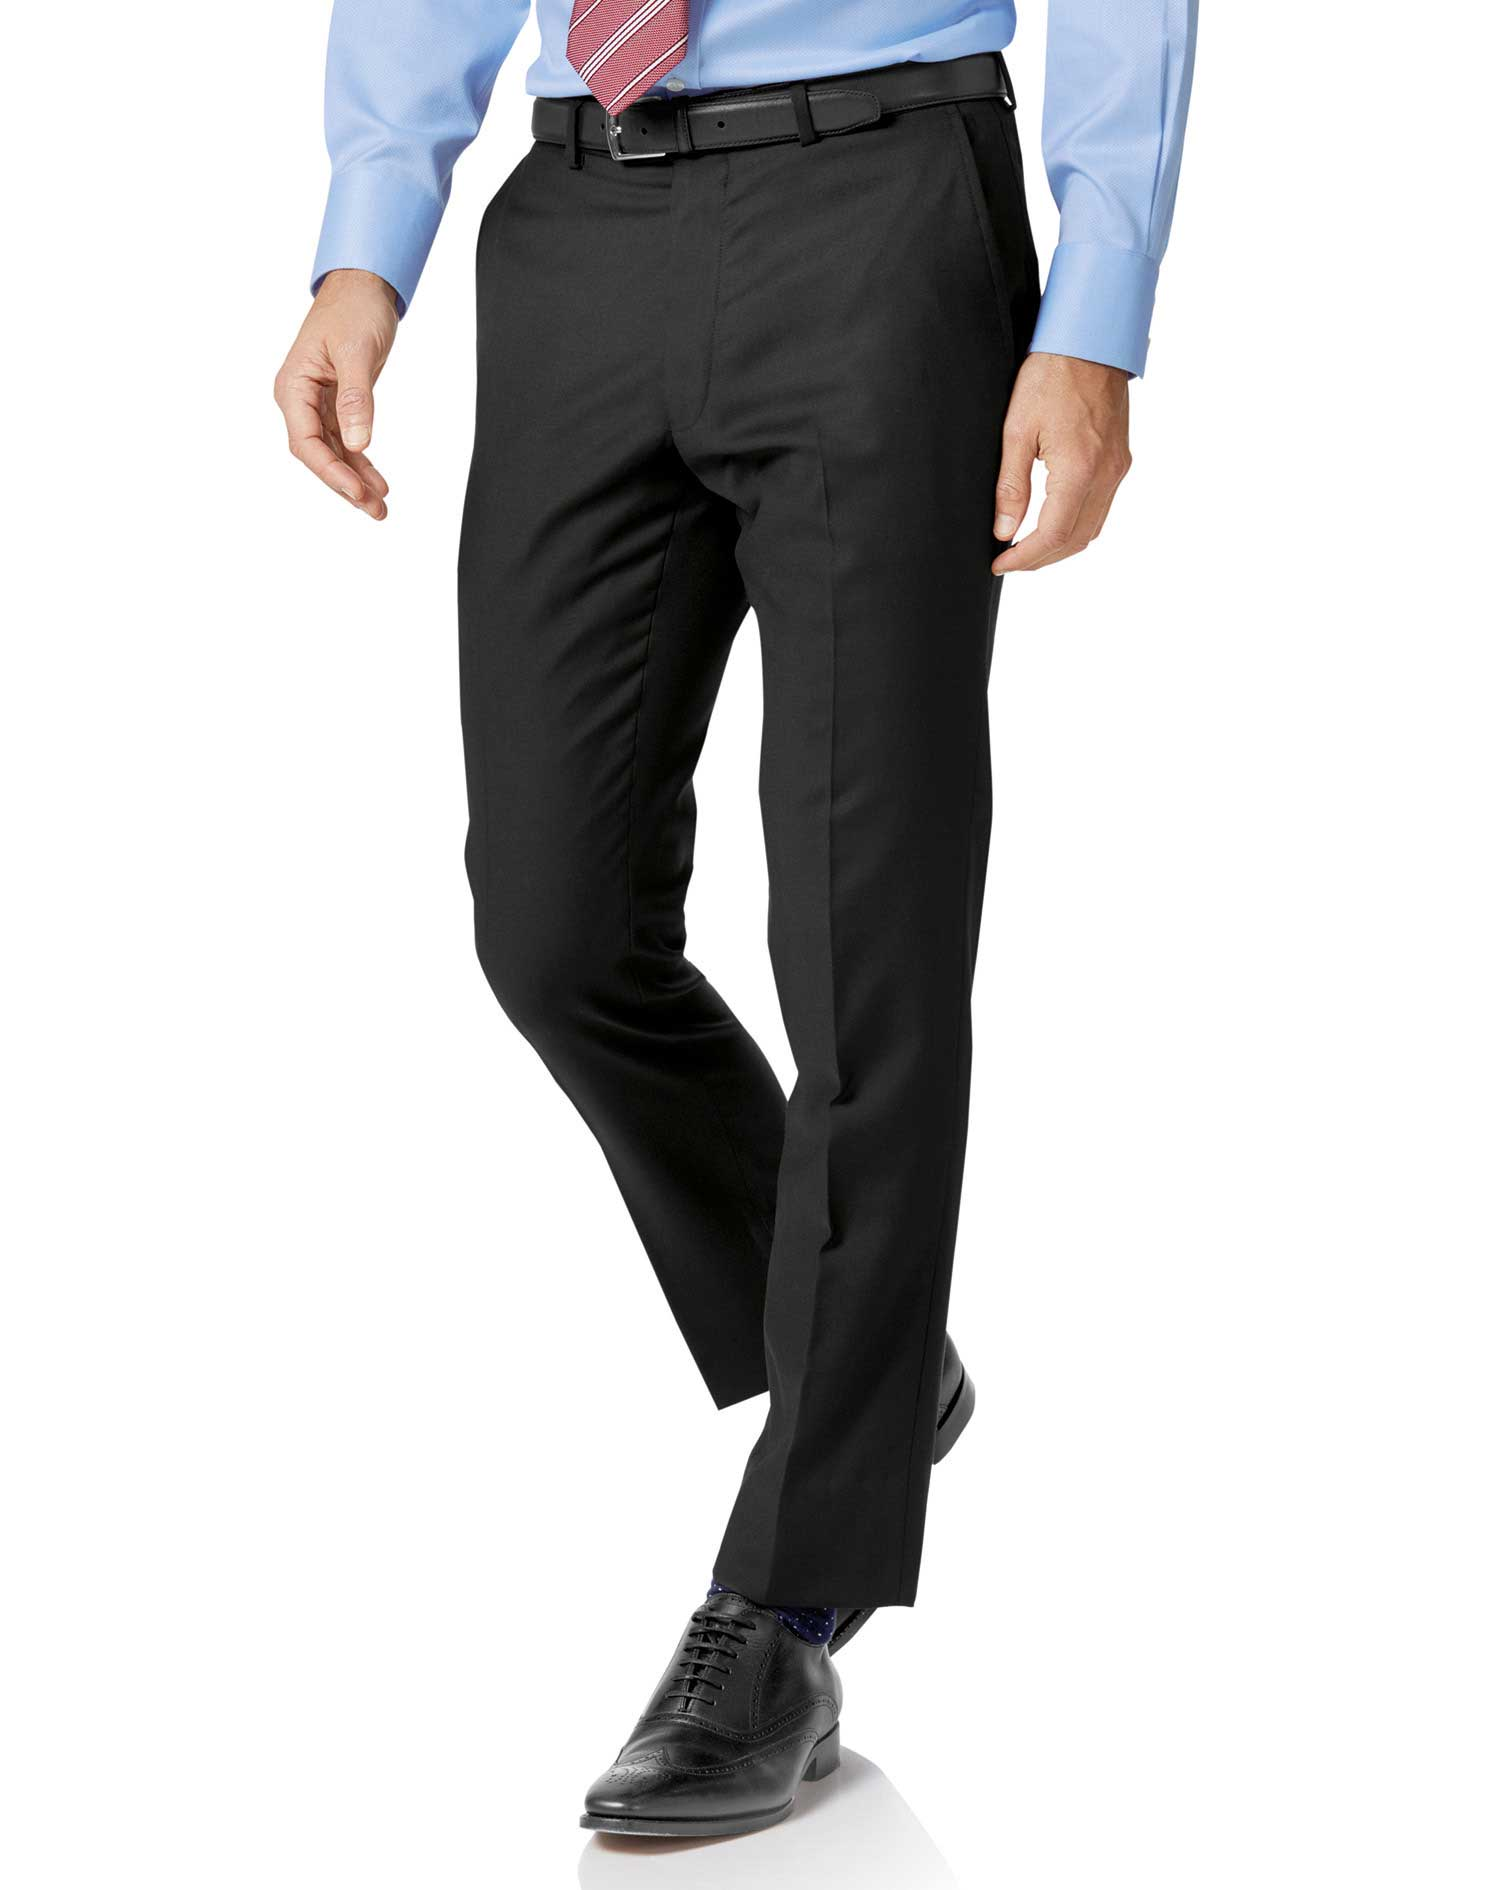 Black Slim Fit Twill Business Suit Trousers Size W36 L32 by Charles Tyrwhitt